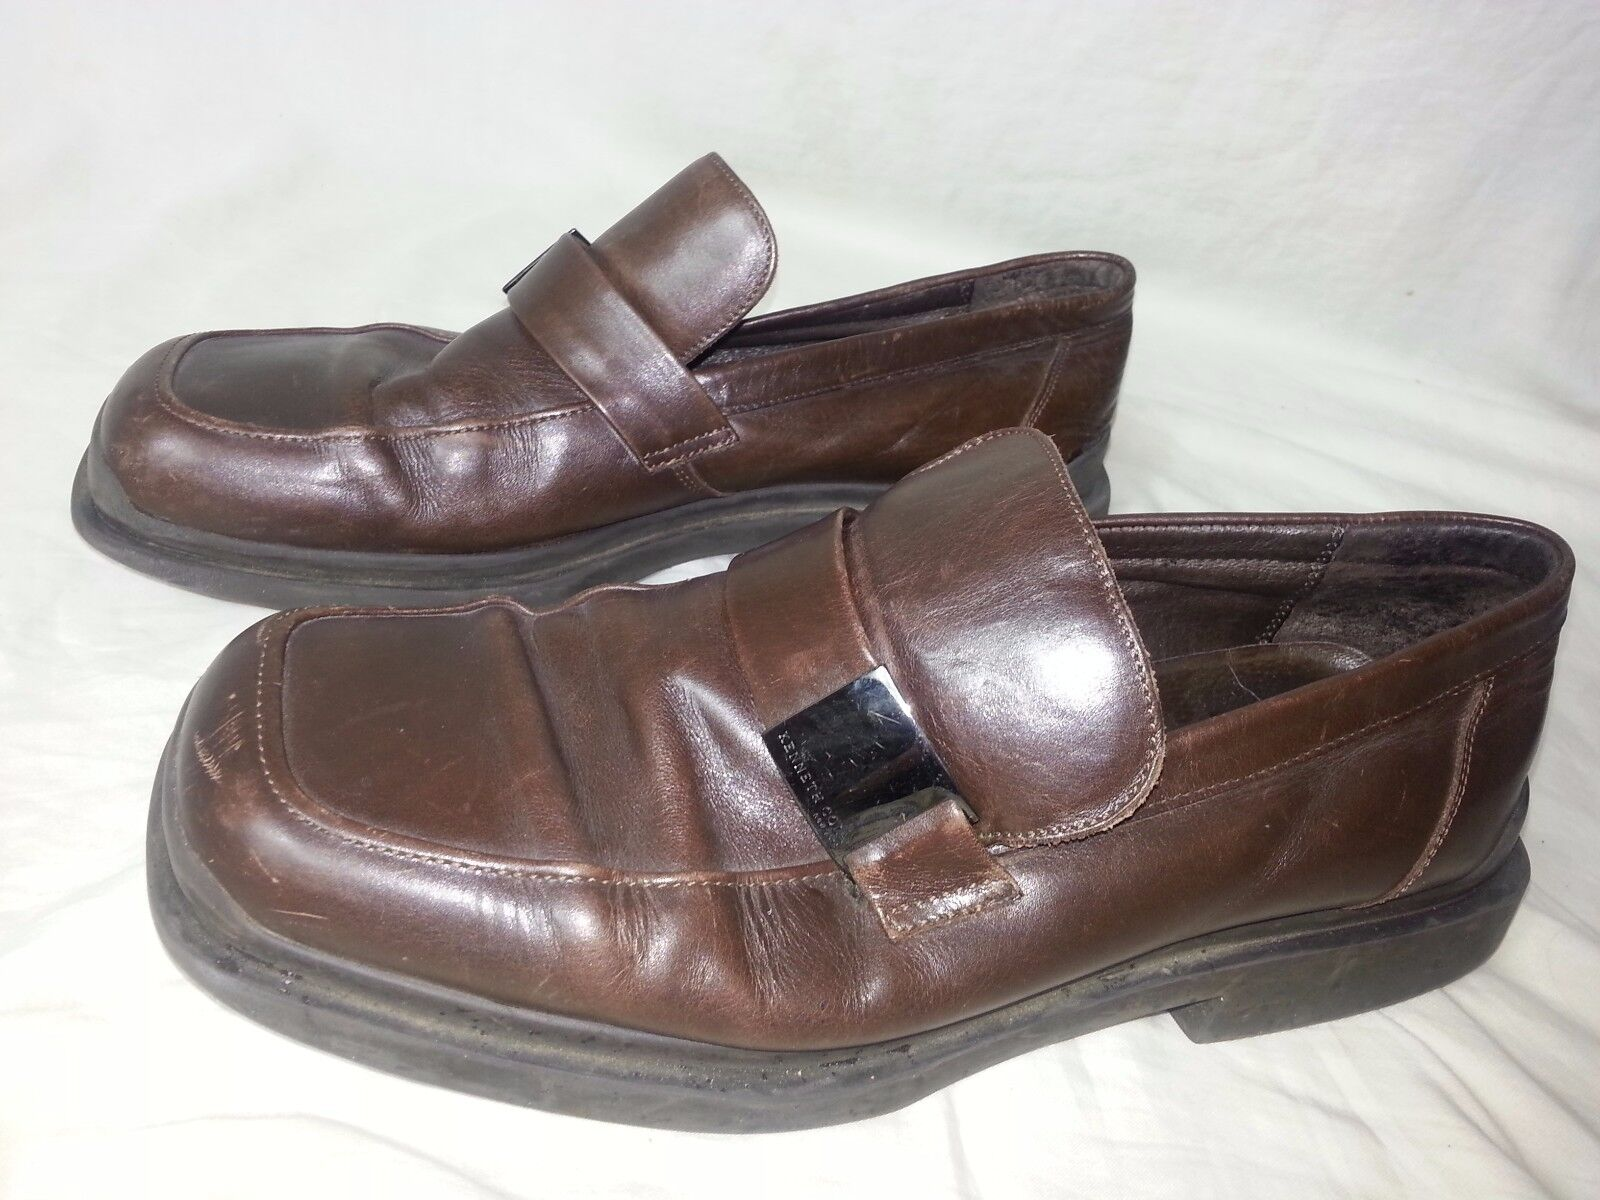 Kenneth Cole New York Men's Oxford Lace Up Brown Dress shoes Size 10.5 ITALY